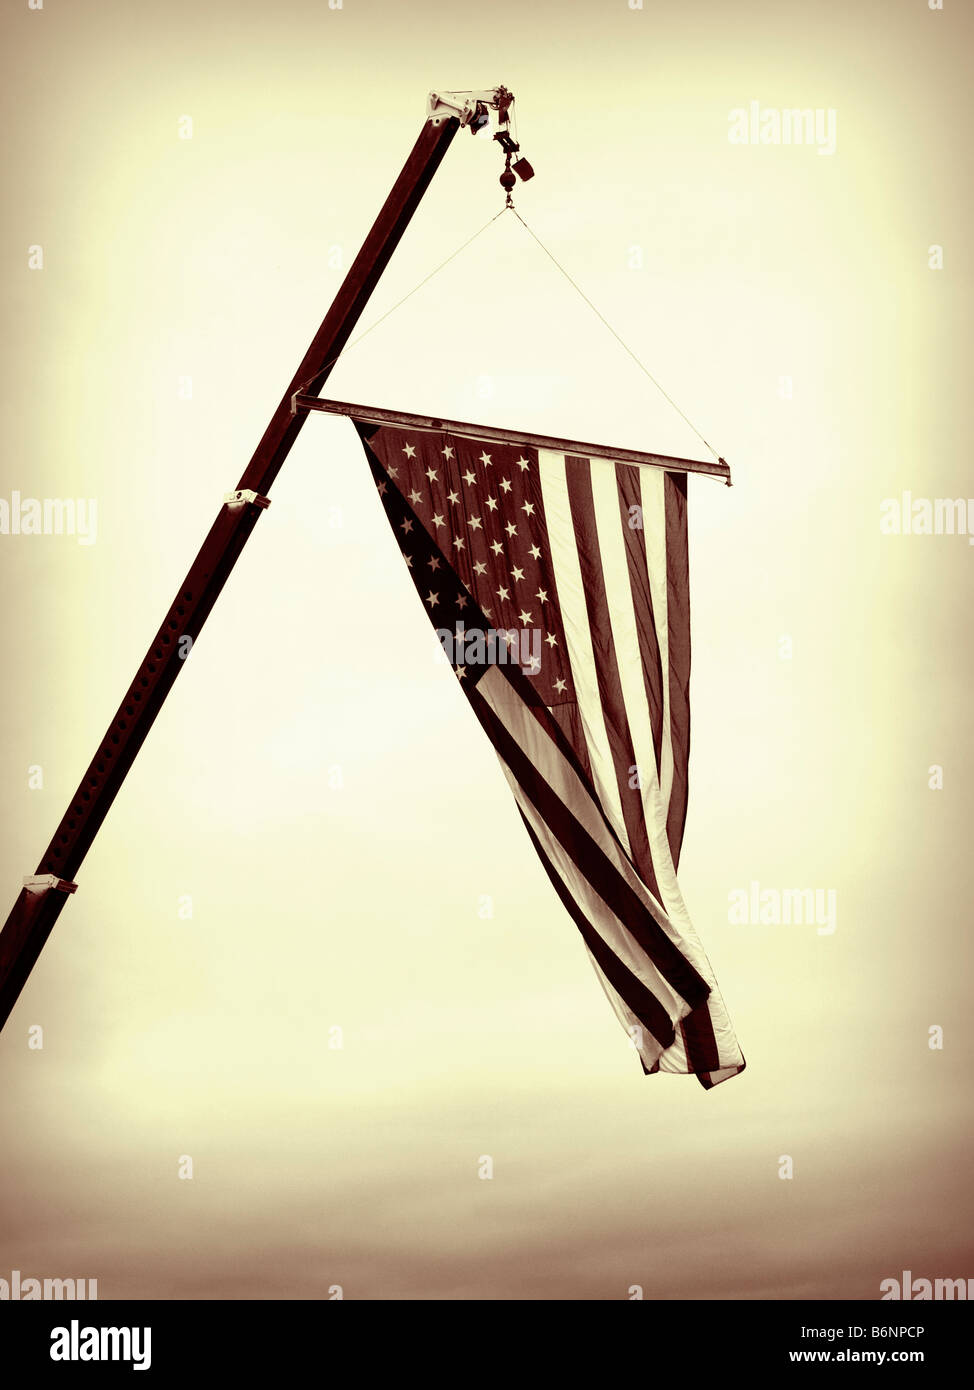 A close up on the American flag suspended from a crane Stock Photo